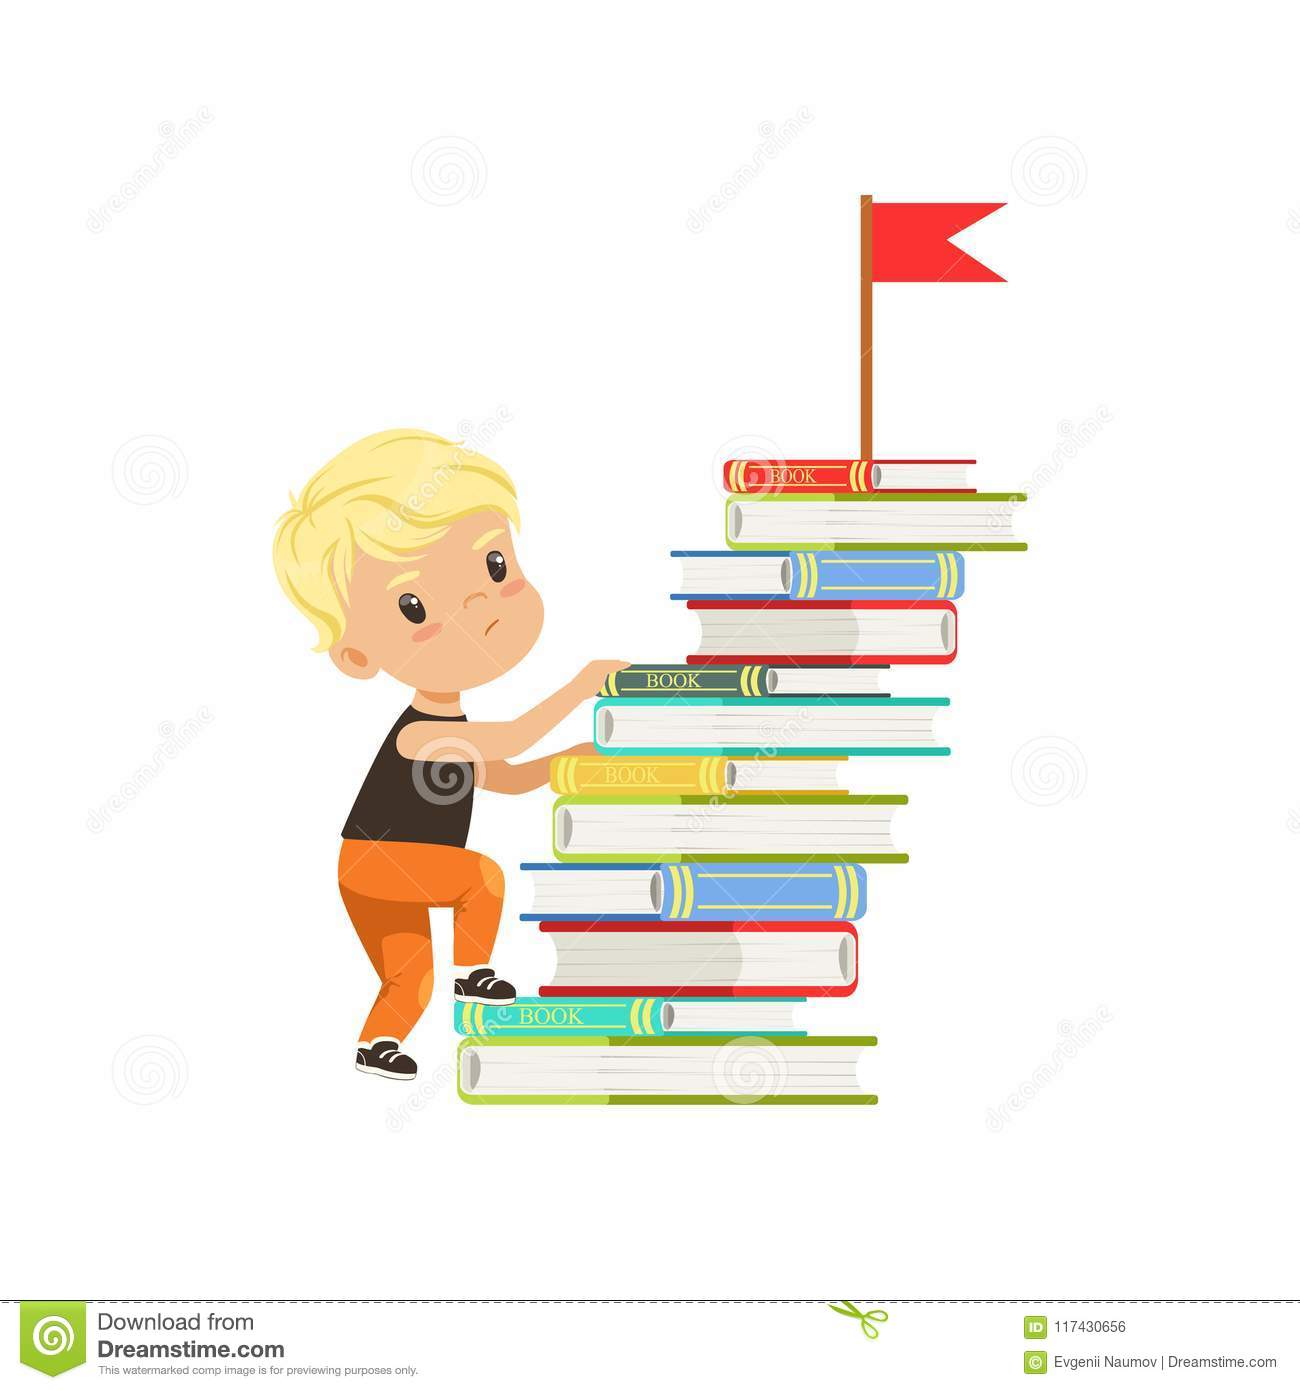 Child Cartoon Climbing Stairs Stock Illustrations 74 Child Cartoon Climbing Stairs Stock Illustrations Vectors Clipart Dreamstime